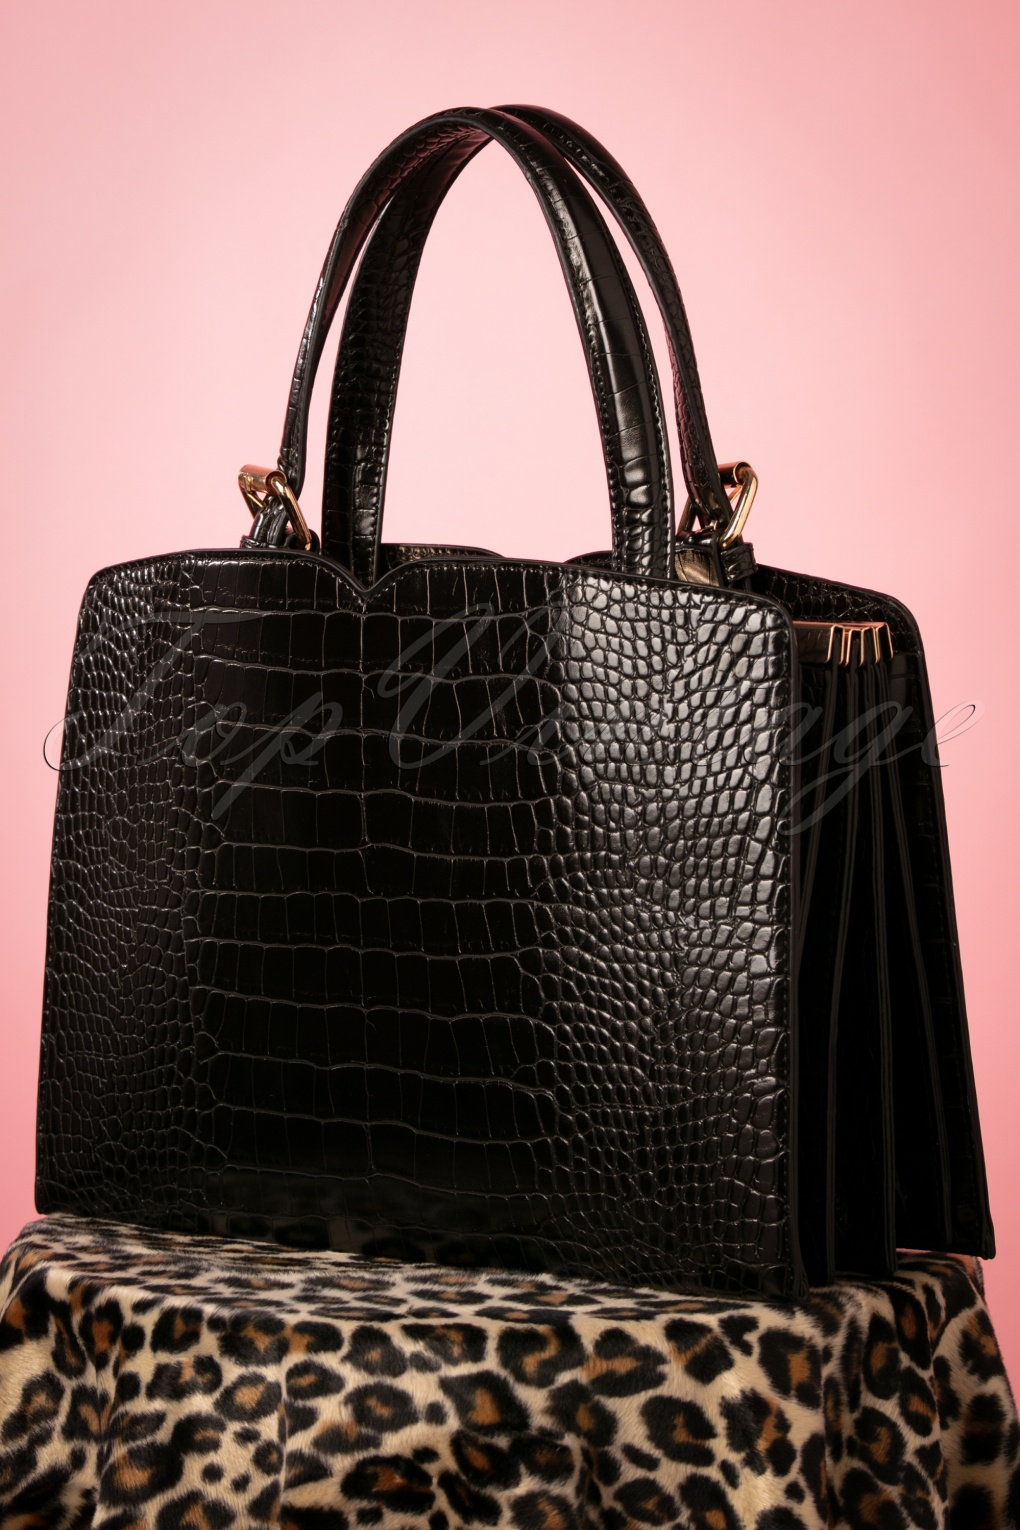 1950s Handbags, Purses, and Evening Bag Styles 50s Indiscreet Bag in Black £67.06 AT vintagedancer.com